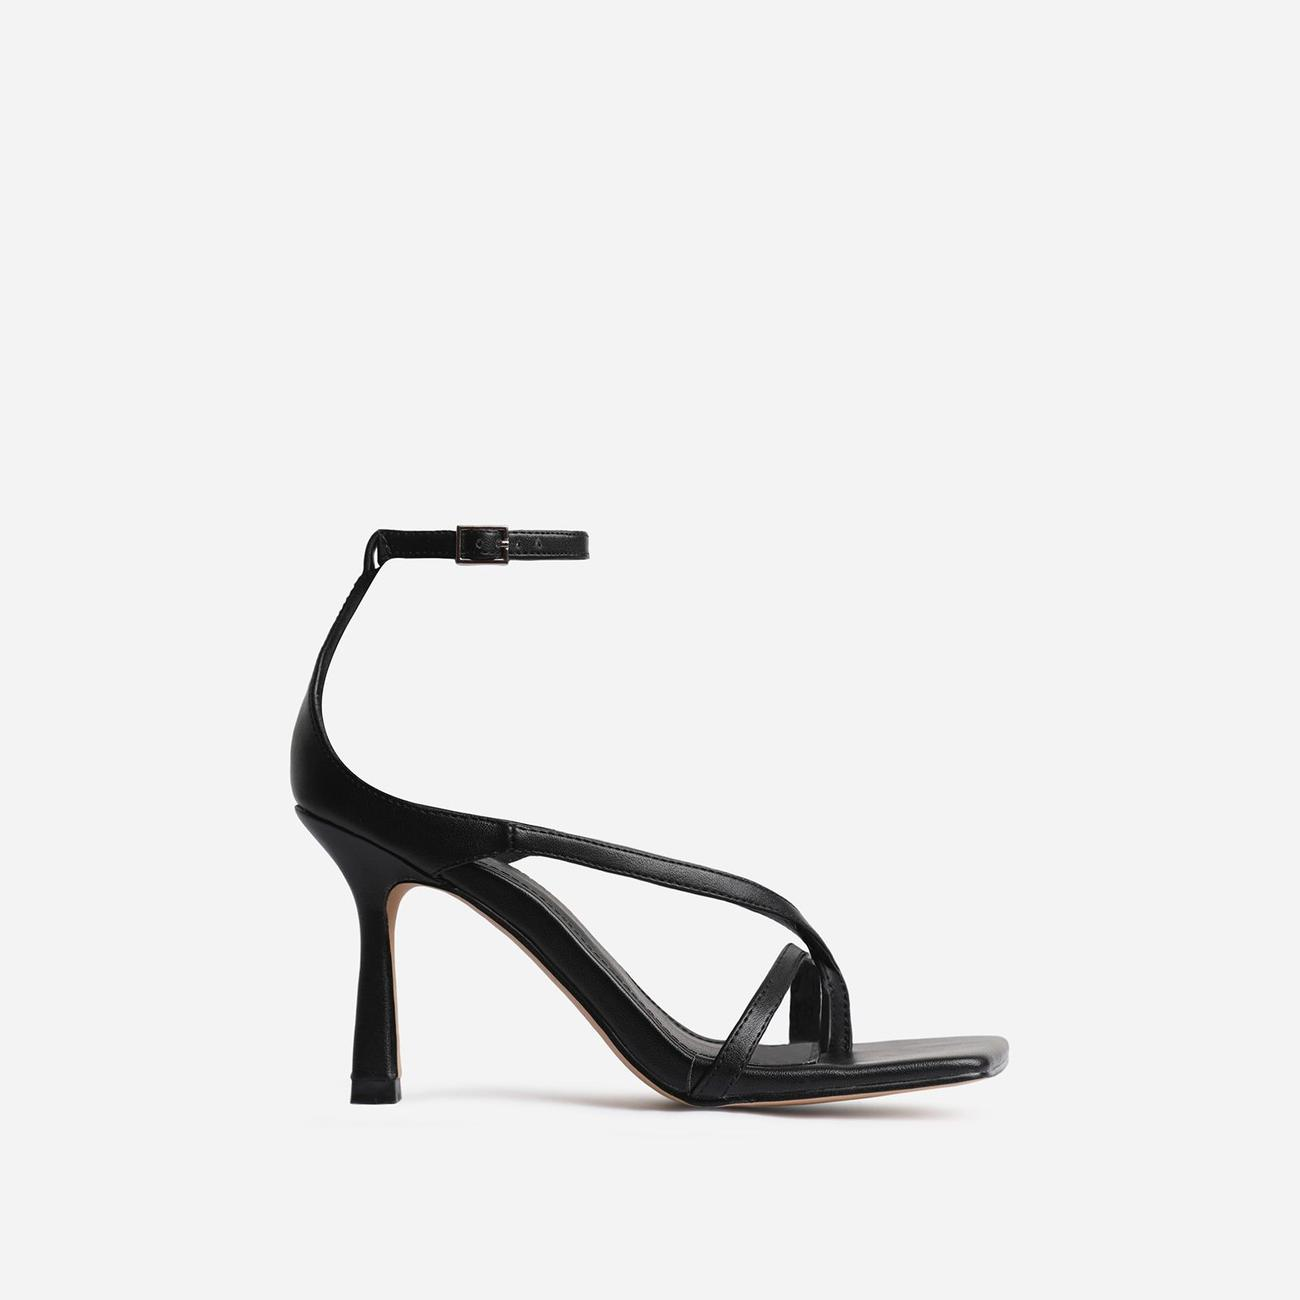 Eve Square Toe Strappy Heel In Black Faux Leather Image 1